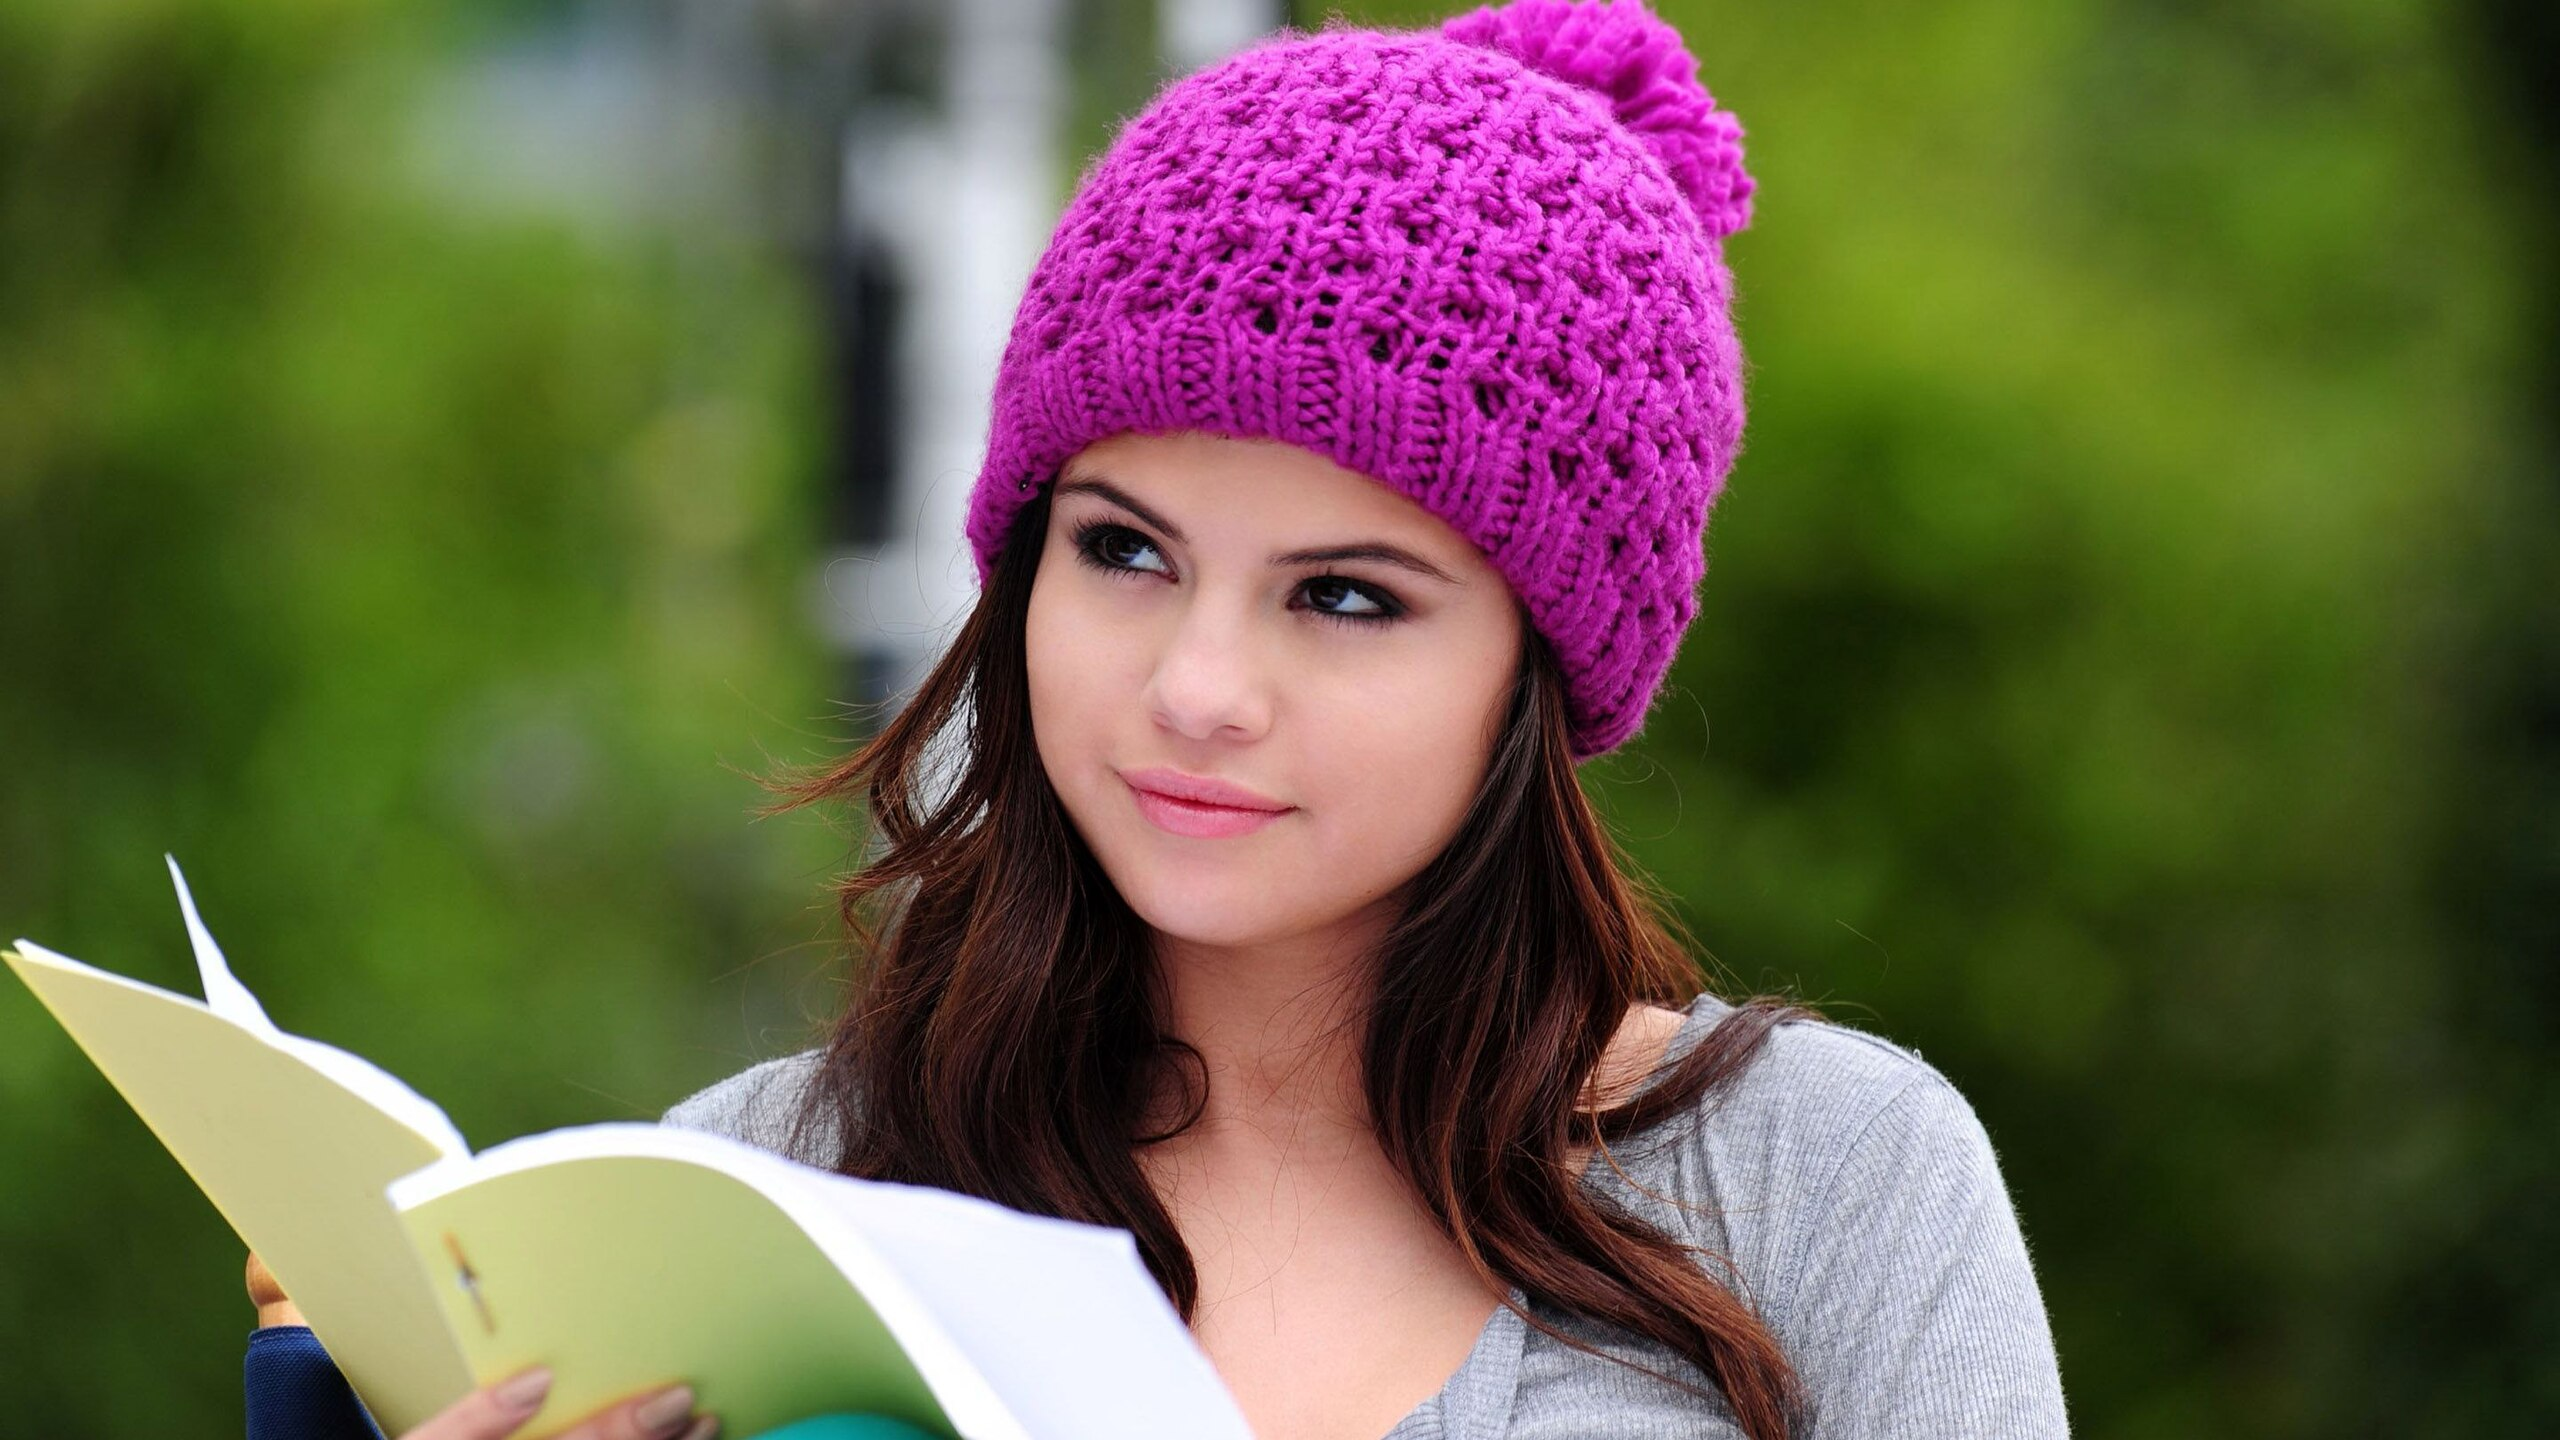 2560x1440 selena gomez cute 1440p resolution hd 4k wallpapers